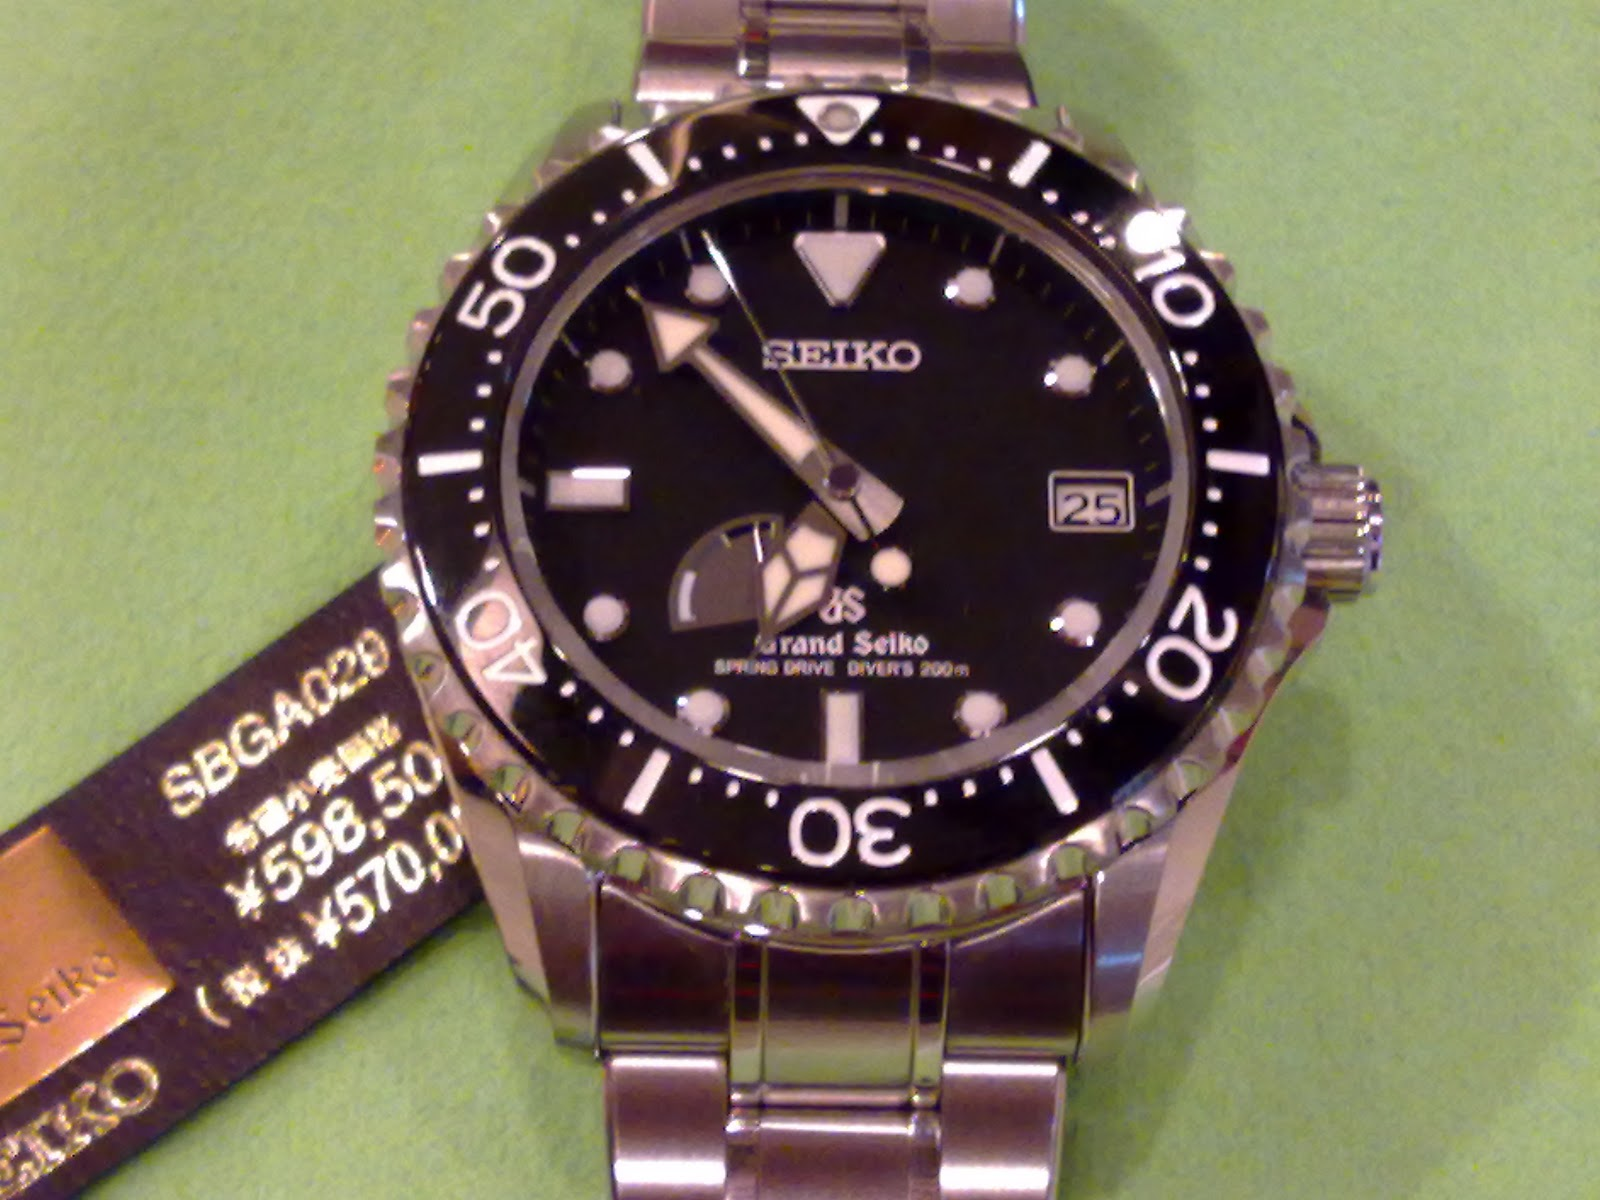 Hong kong watch fever the most expensive diver 39 s watch from seiko for Watches expensive